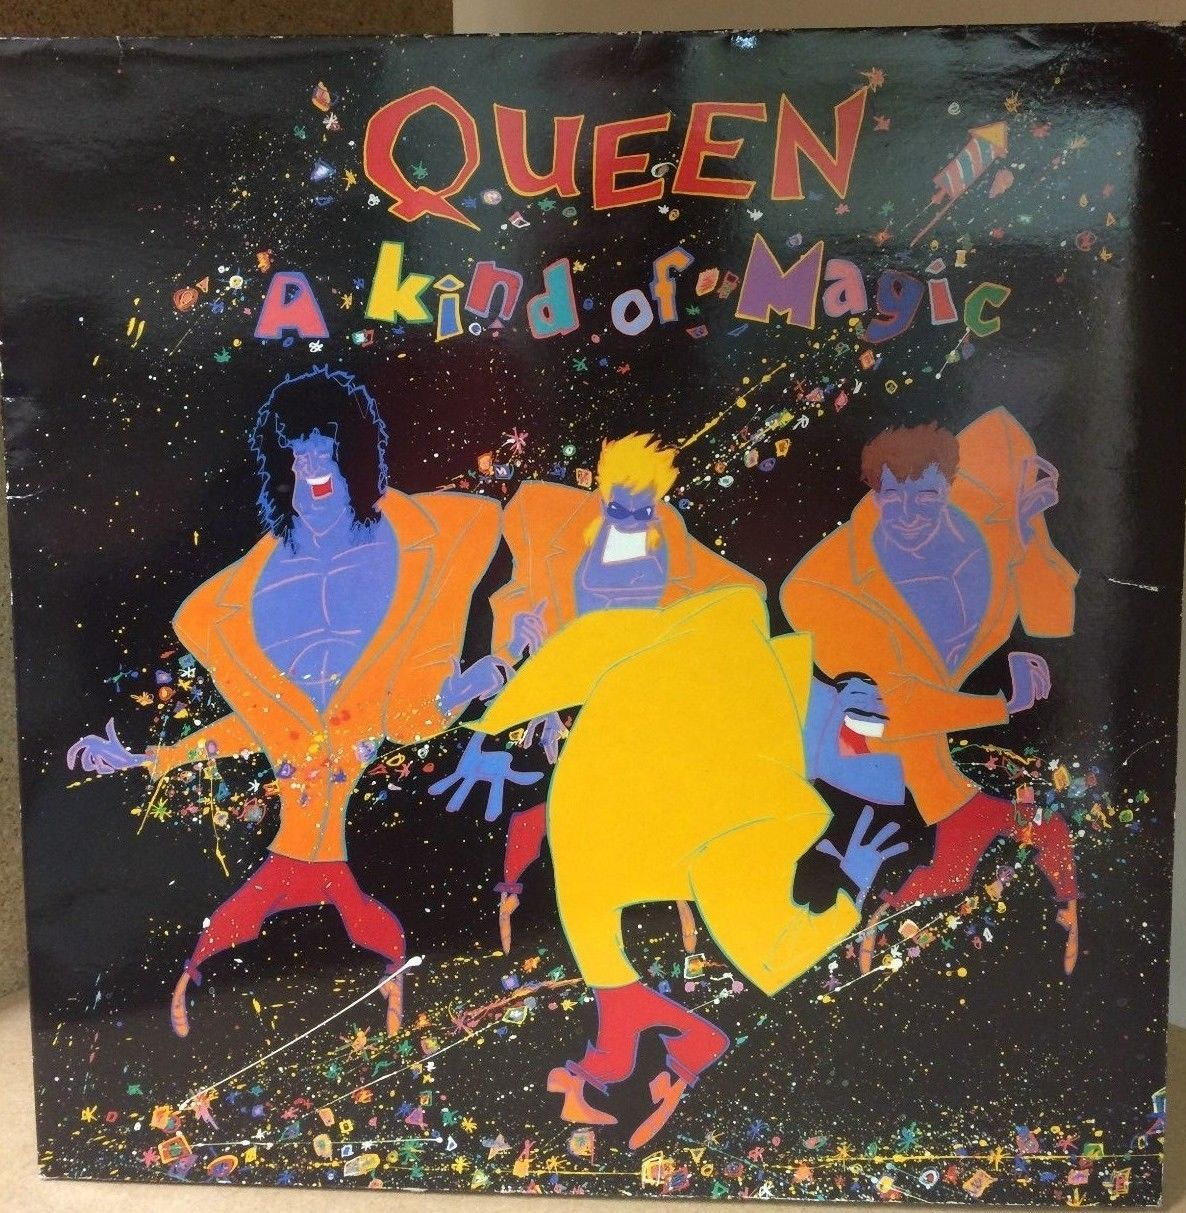 Stg Queen A Kind Of Magic Lp Record 1986 5099924053112 Ebay Queen Album Covers Queen Albums Iconic Album Covers